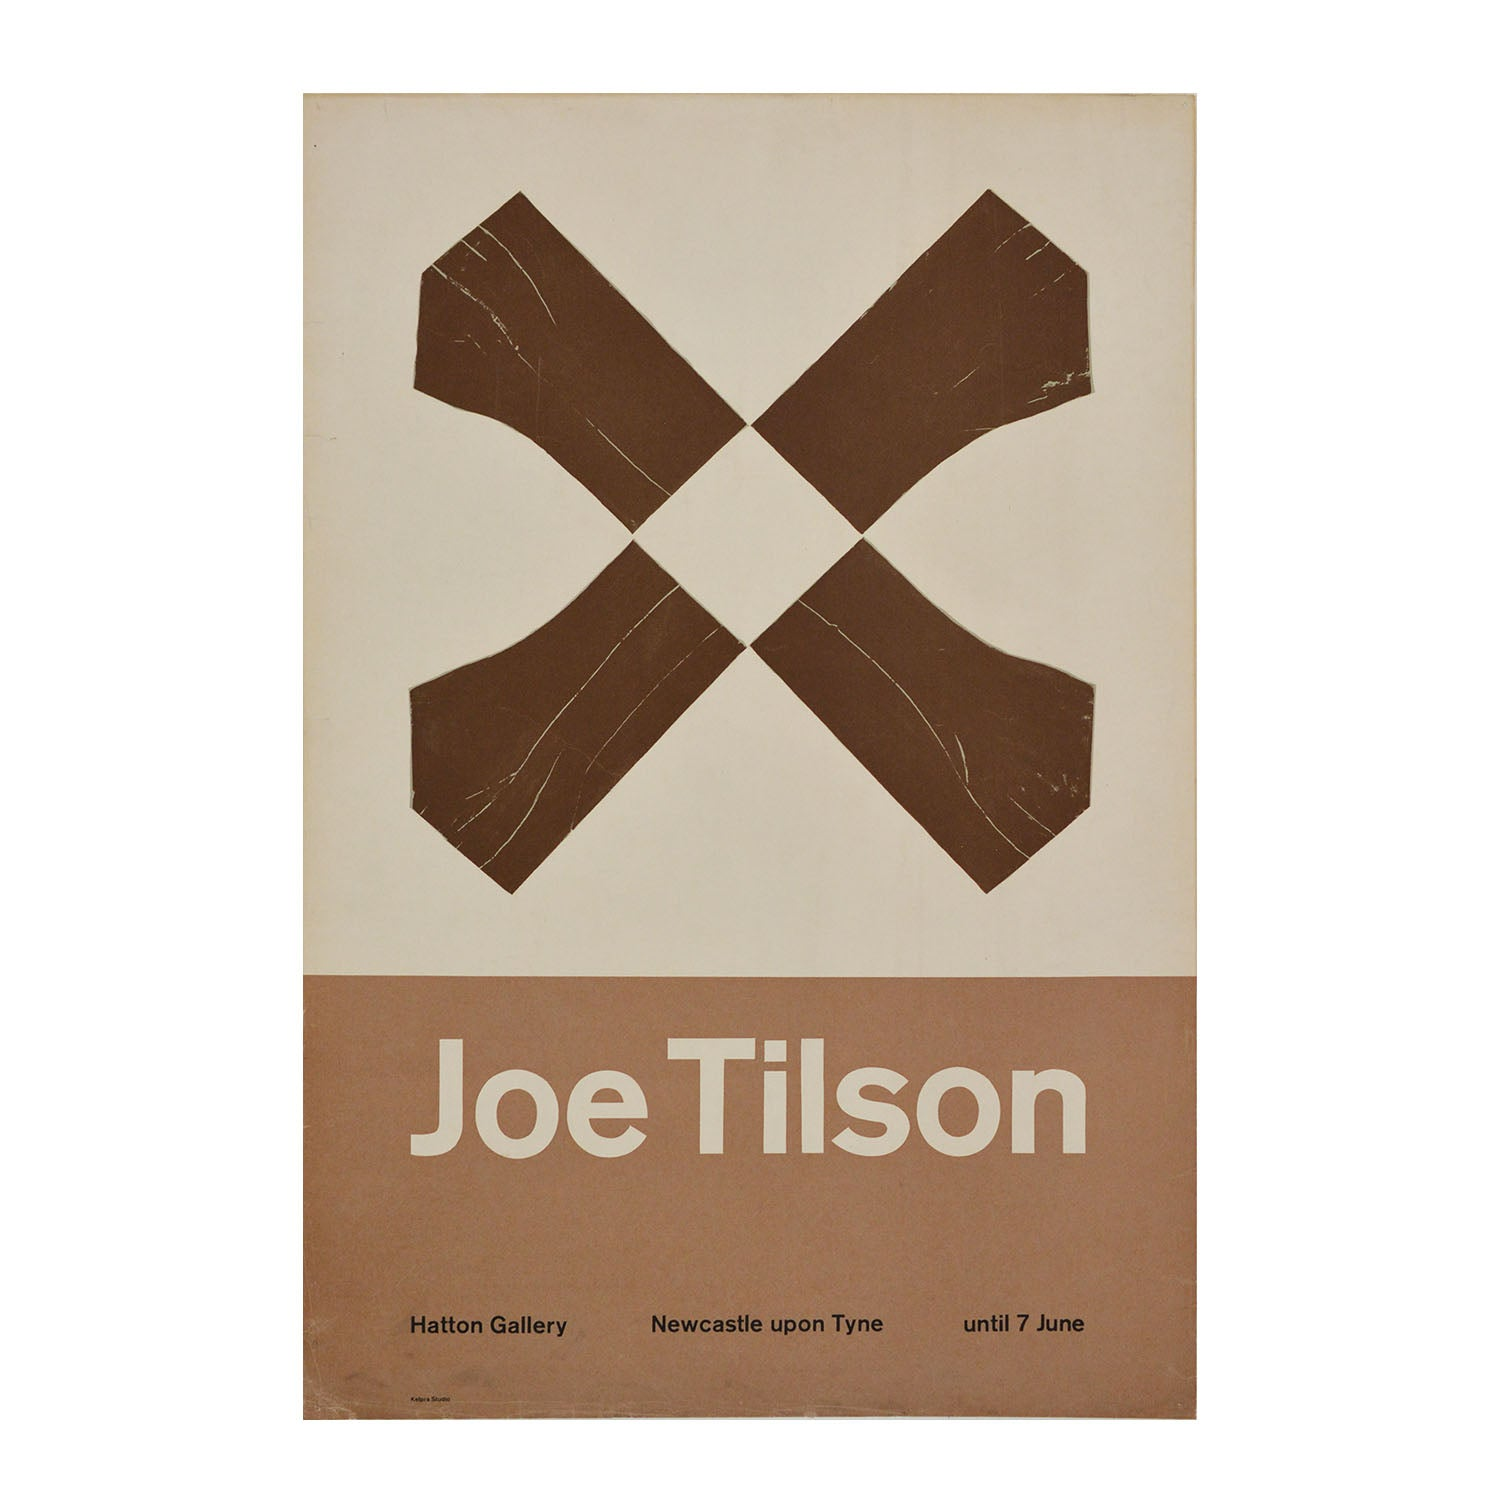 Original poster: Joe Tilson. Exhibition